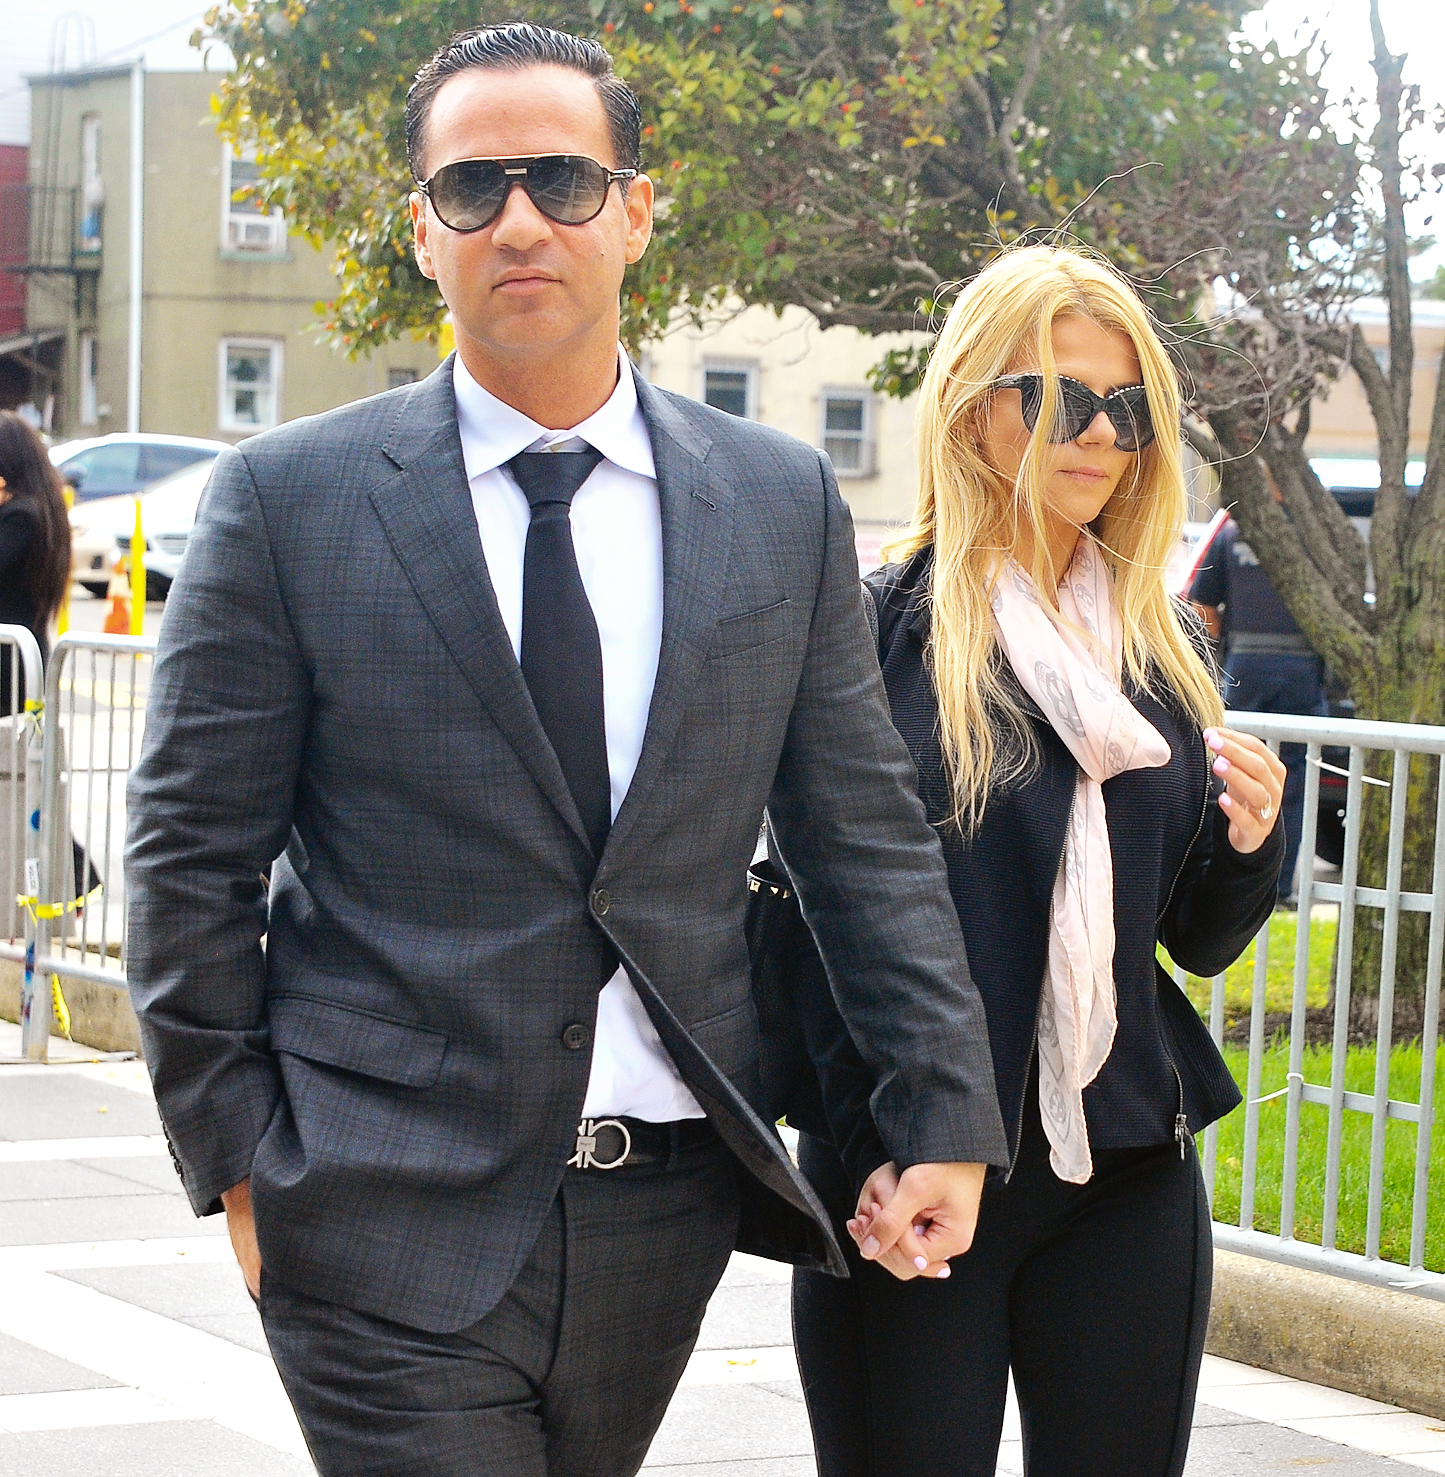 Lauren Pesce Mike Sorrentino Court Tax Evasion Sentencing